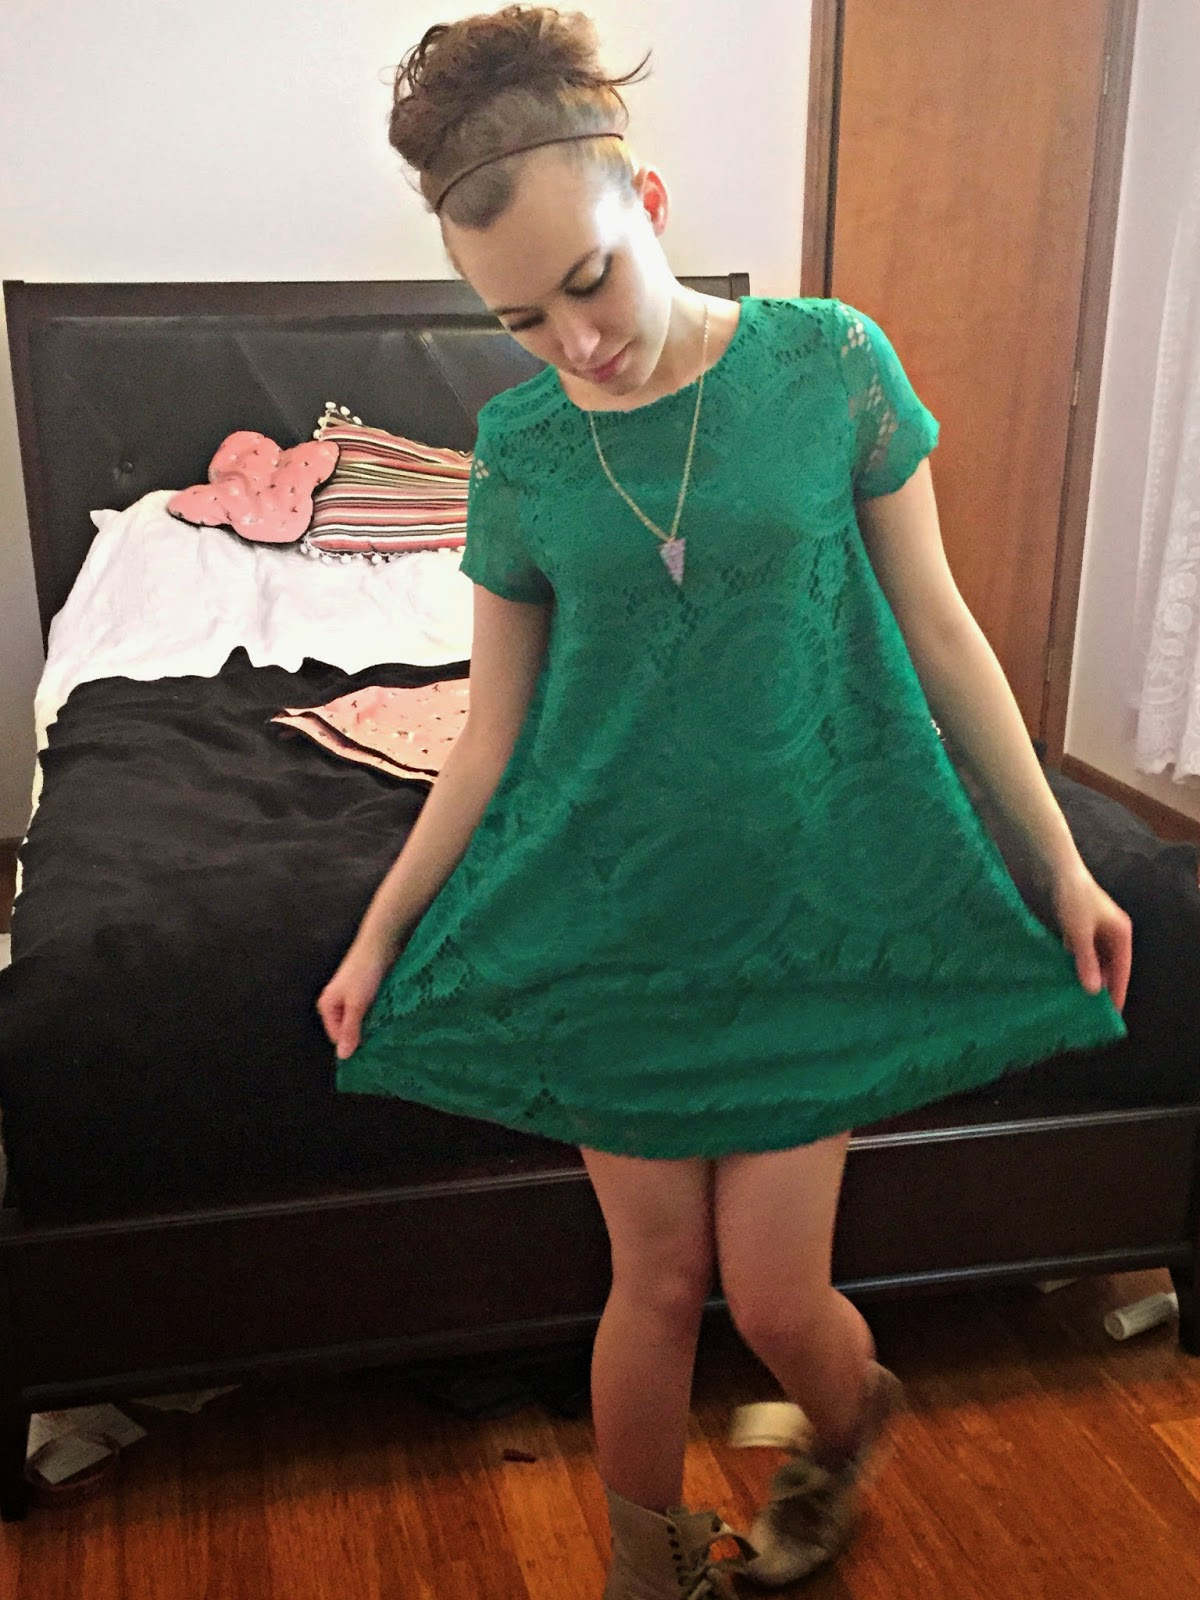 blogger-with-a-dress-on